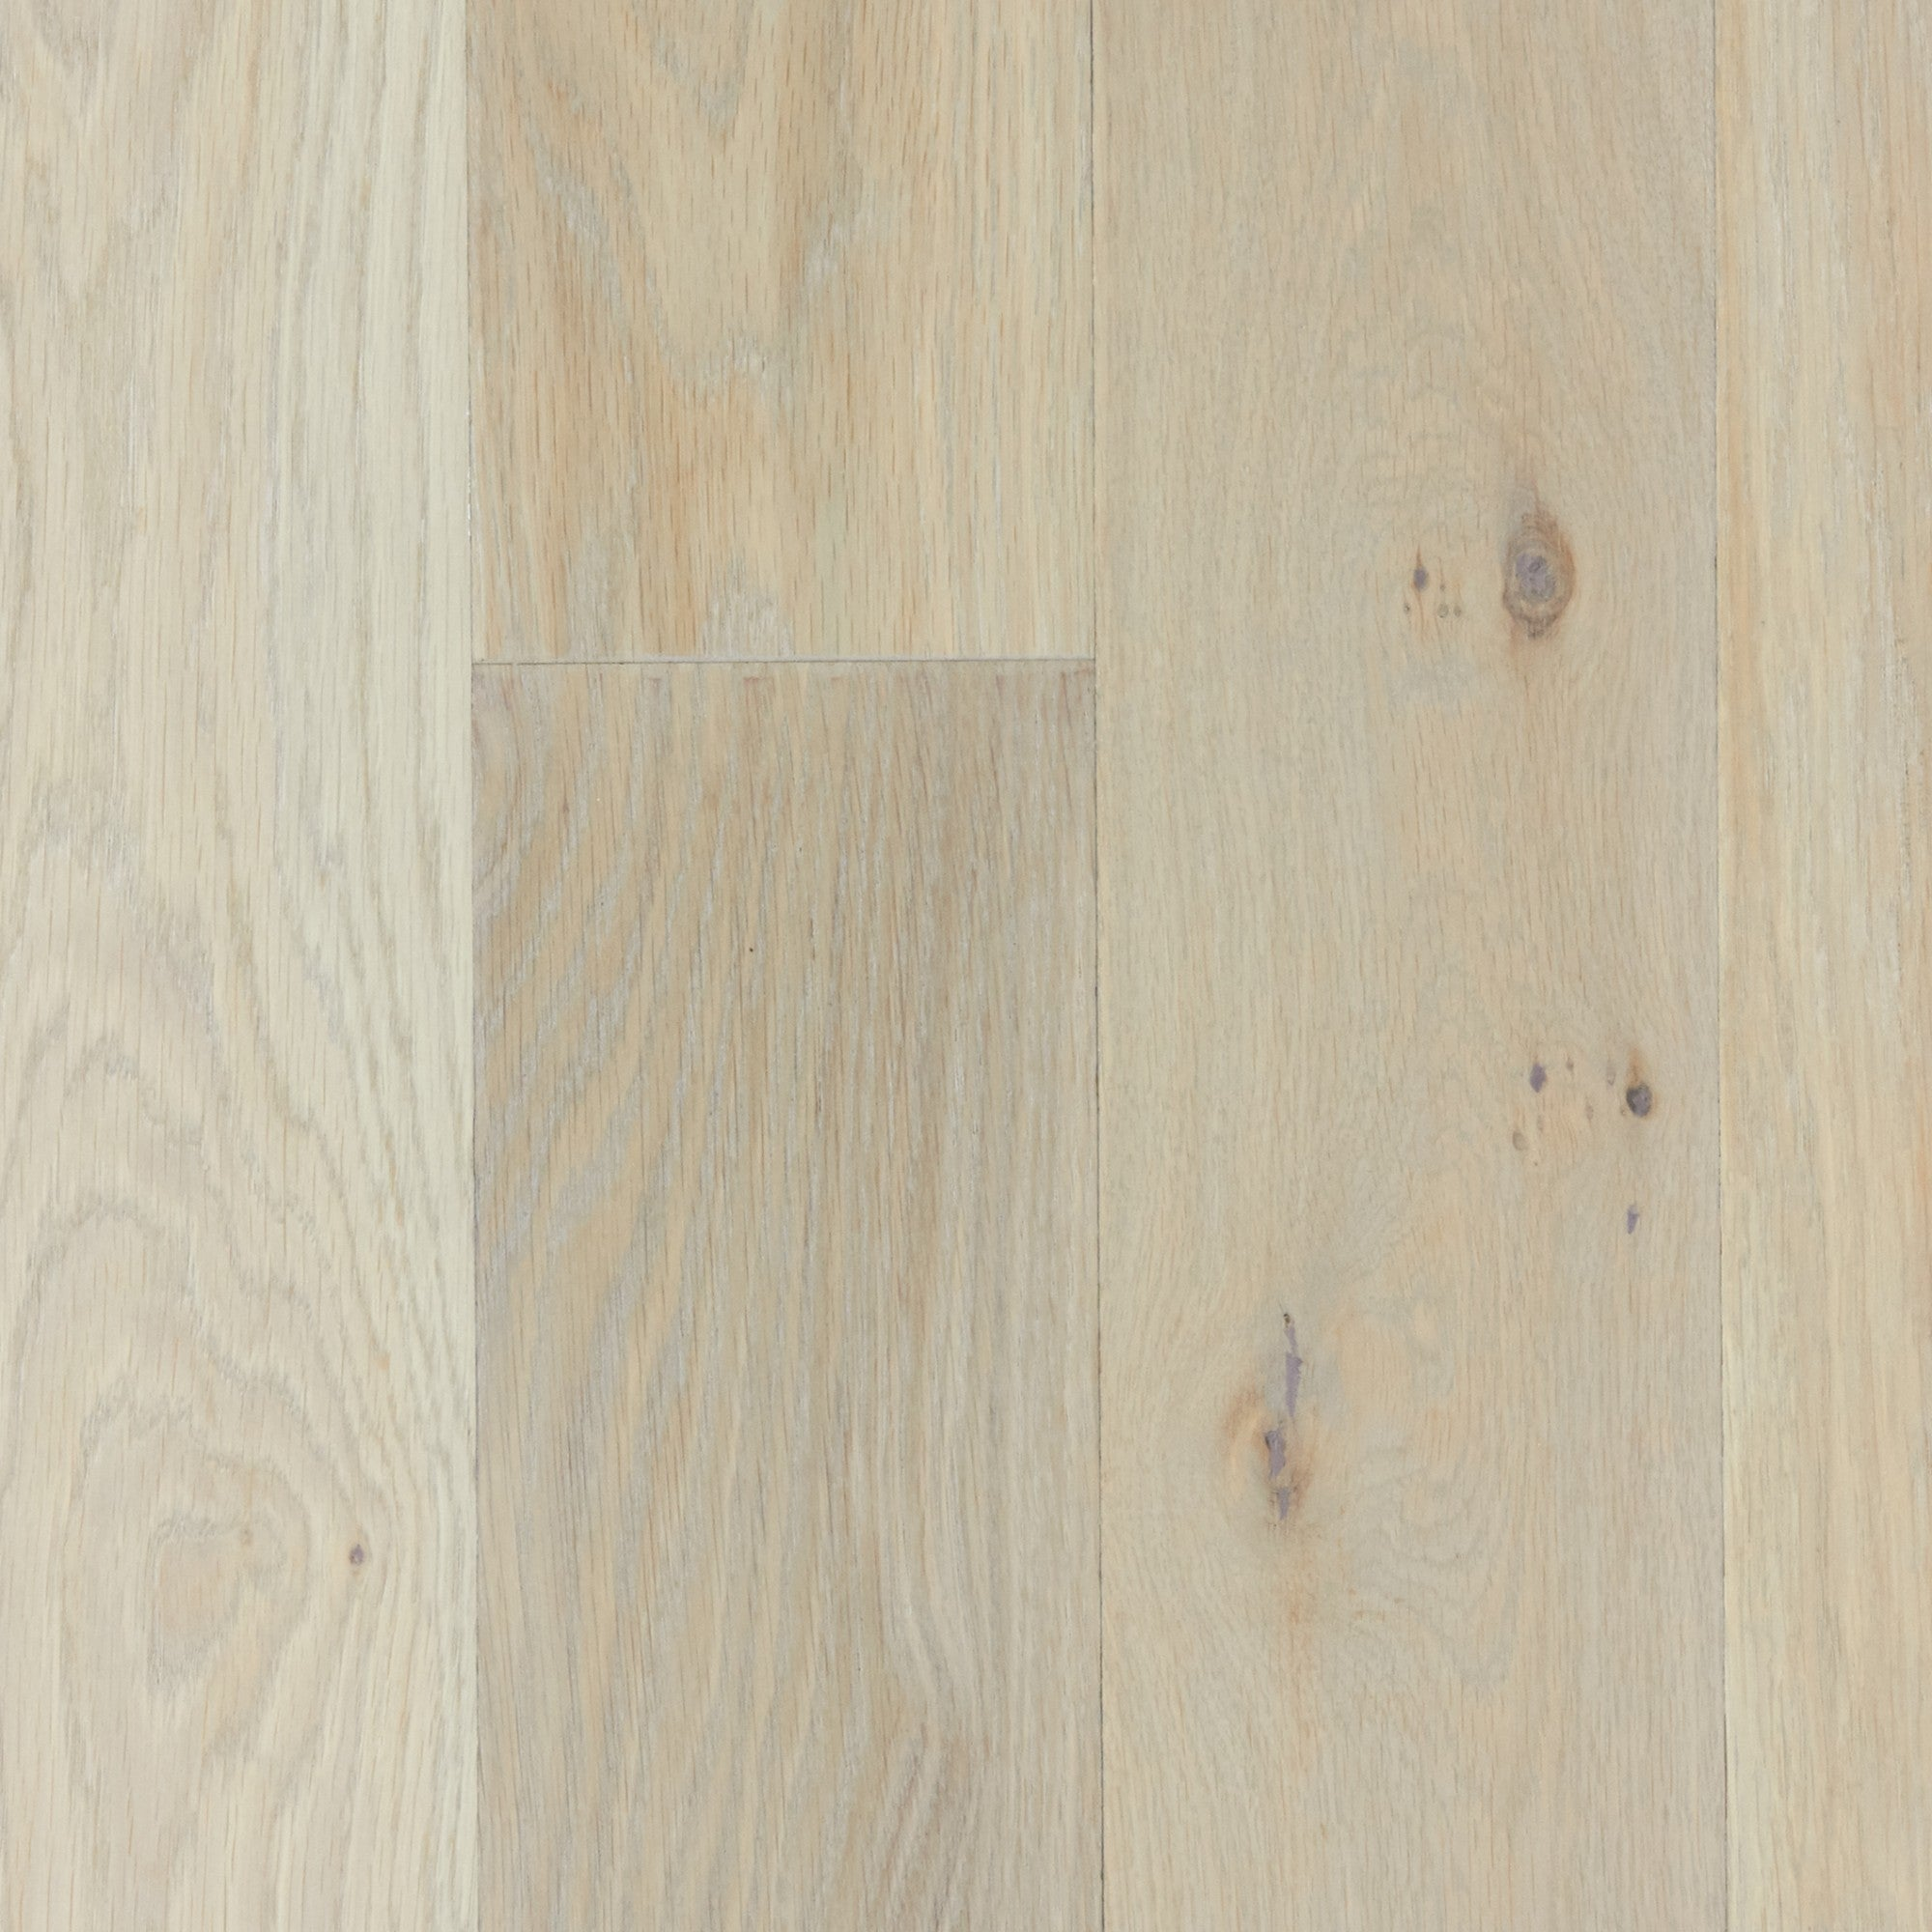 Handscraped - White Oak Nautilus